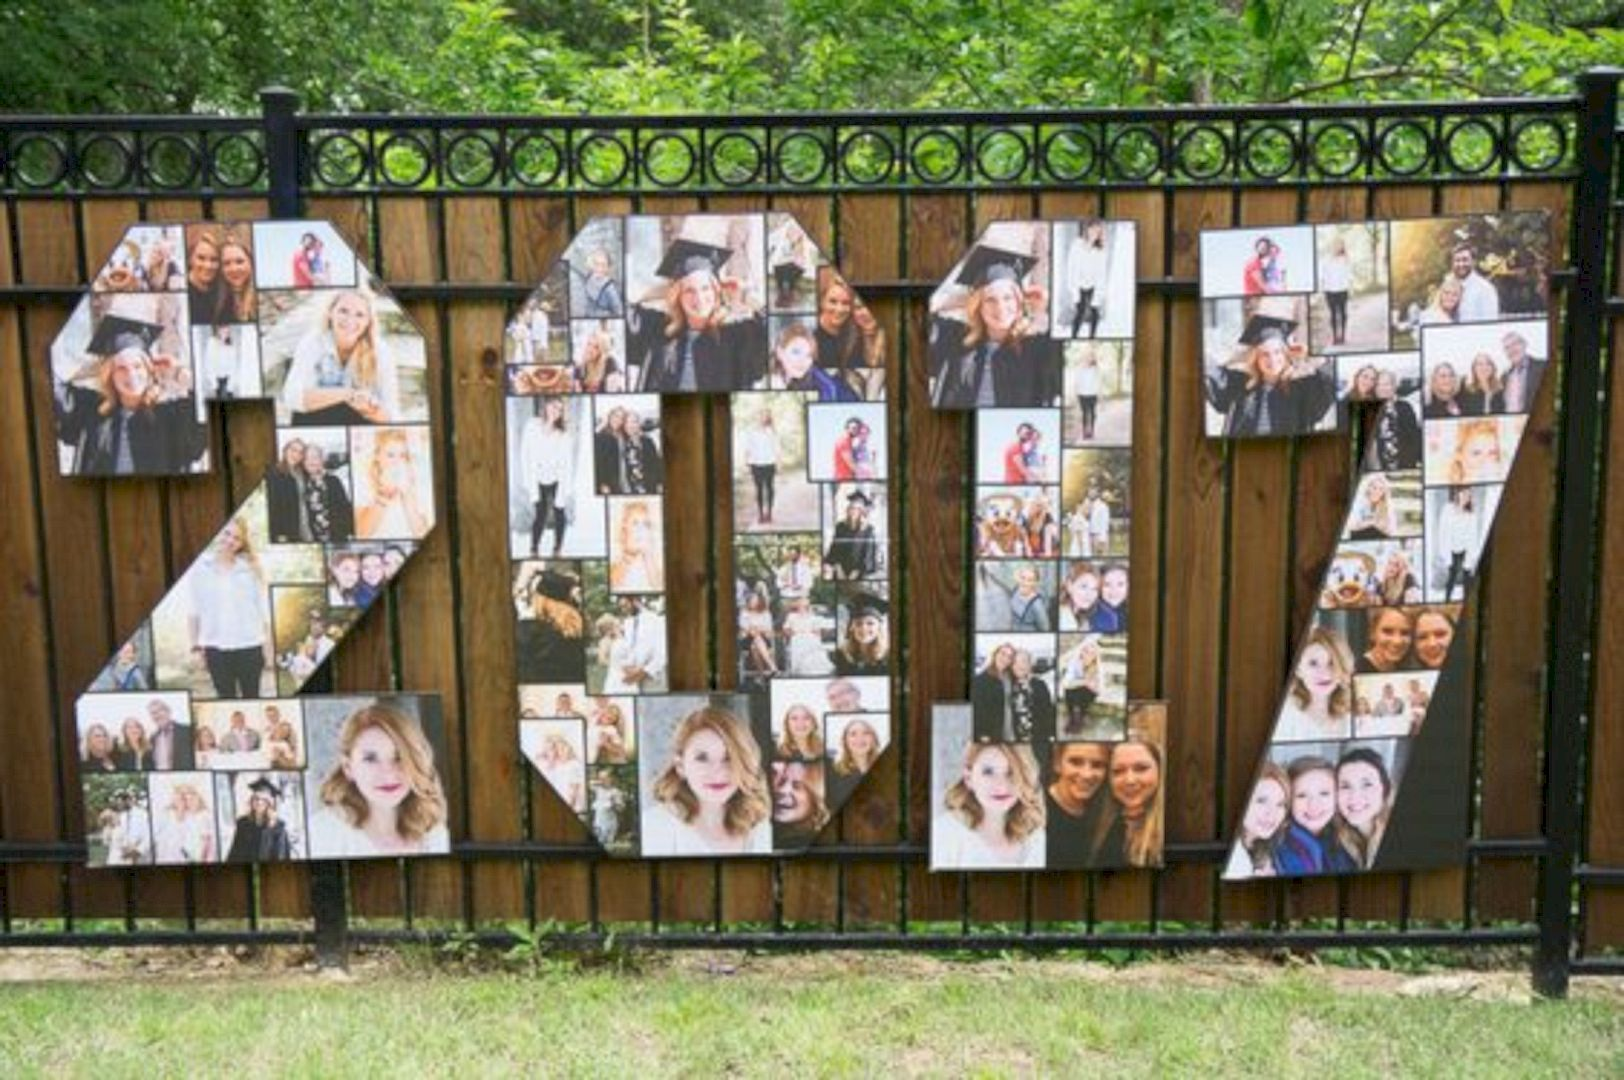 15 unique ideas for graduation party décor 1 | grad party ideas